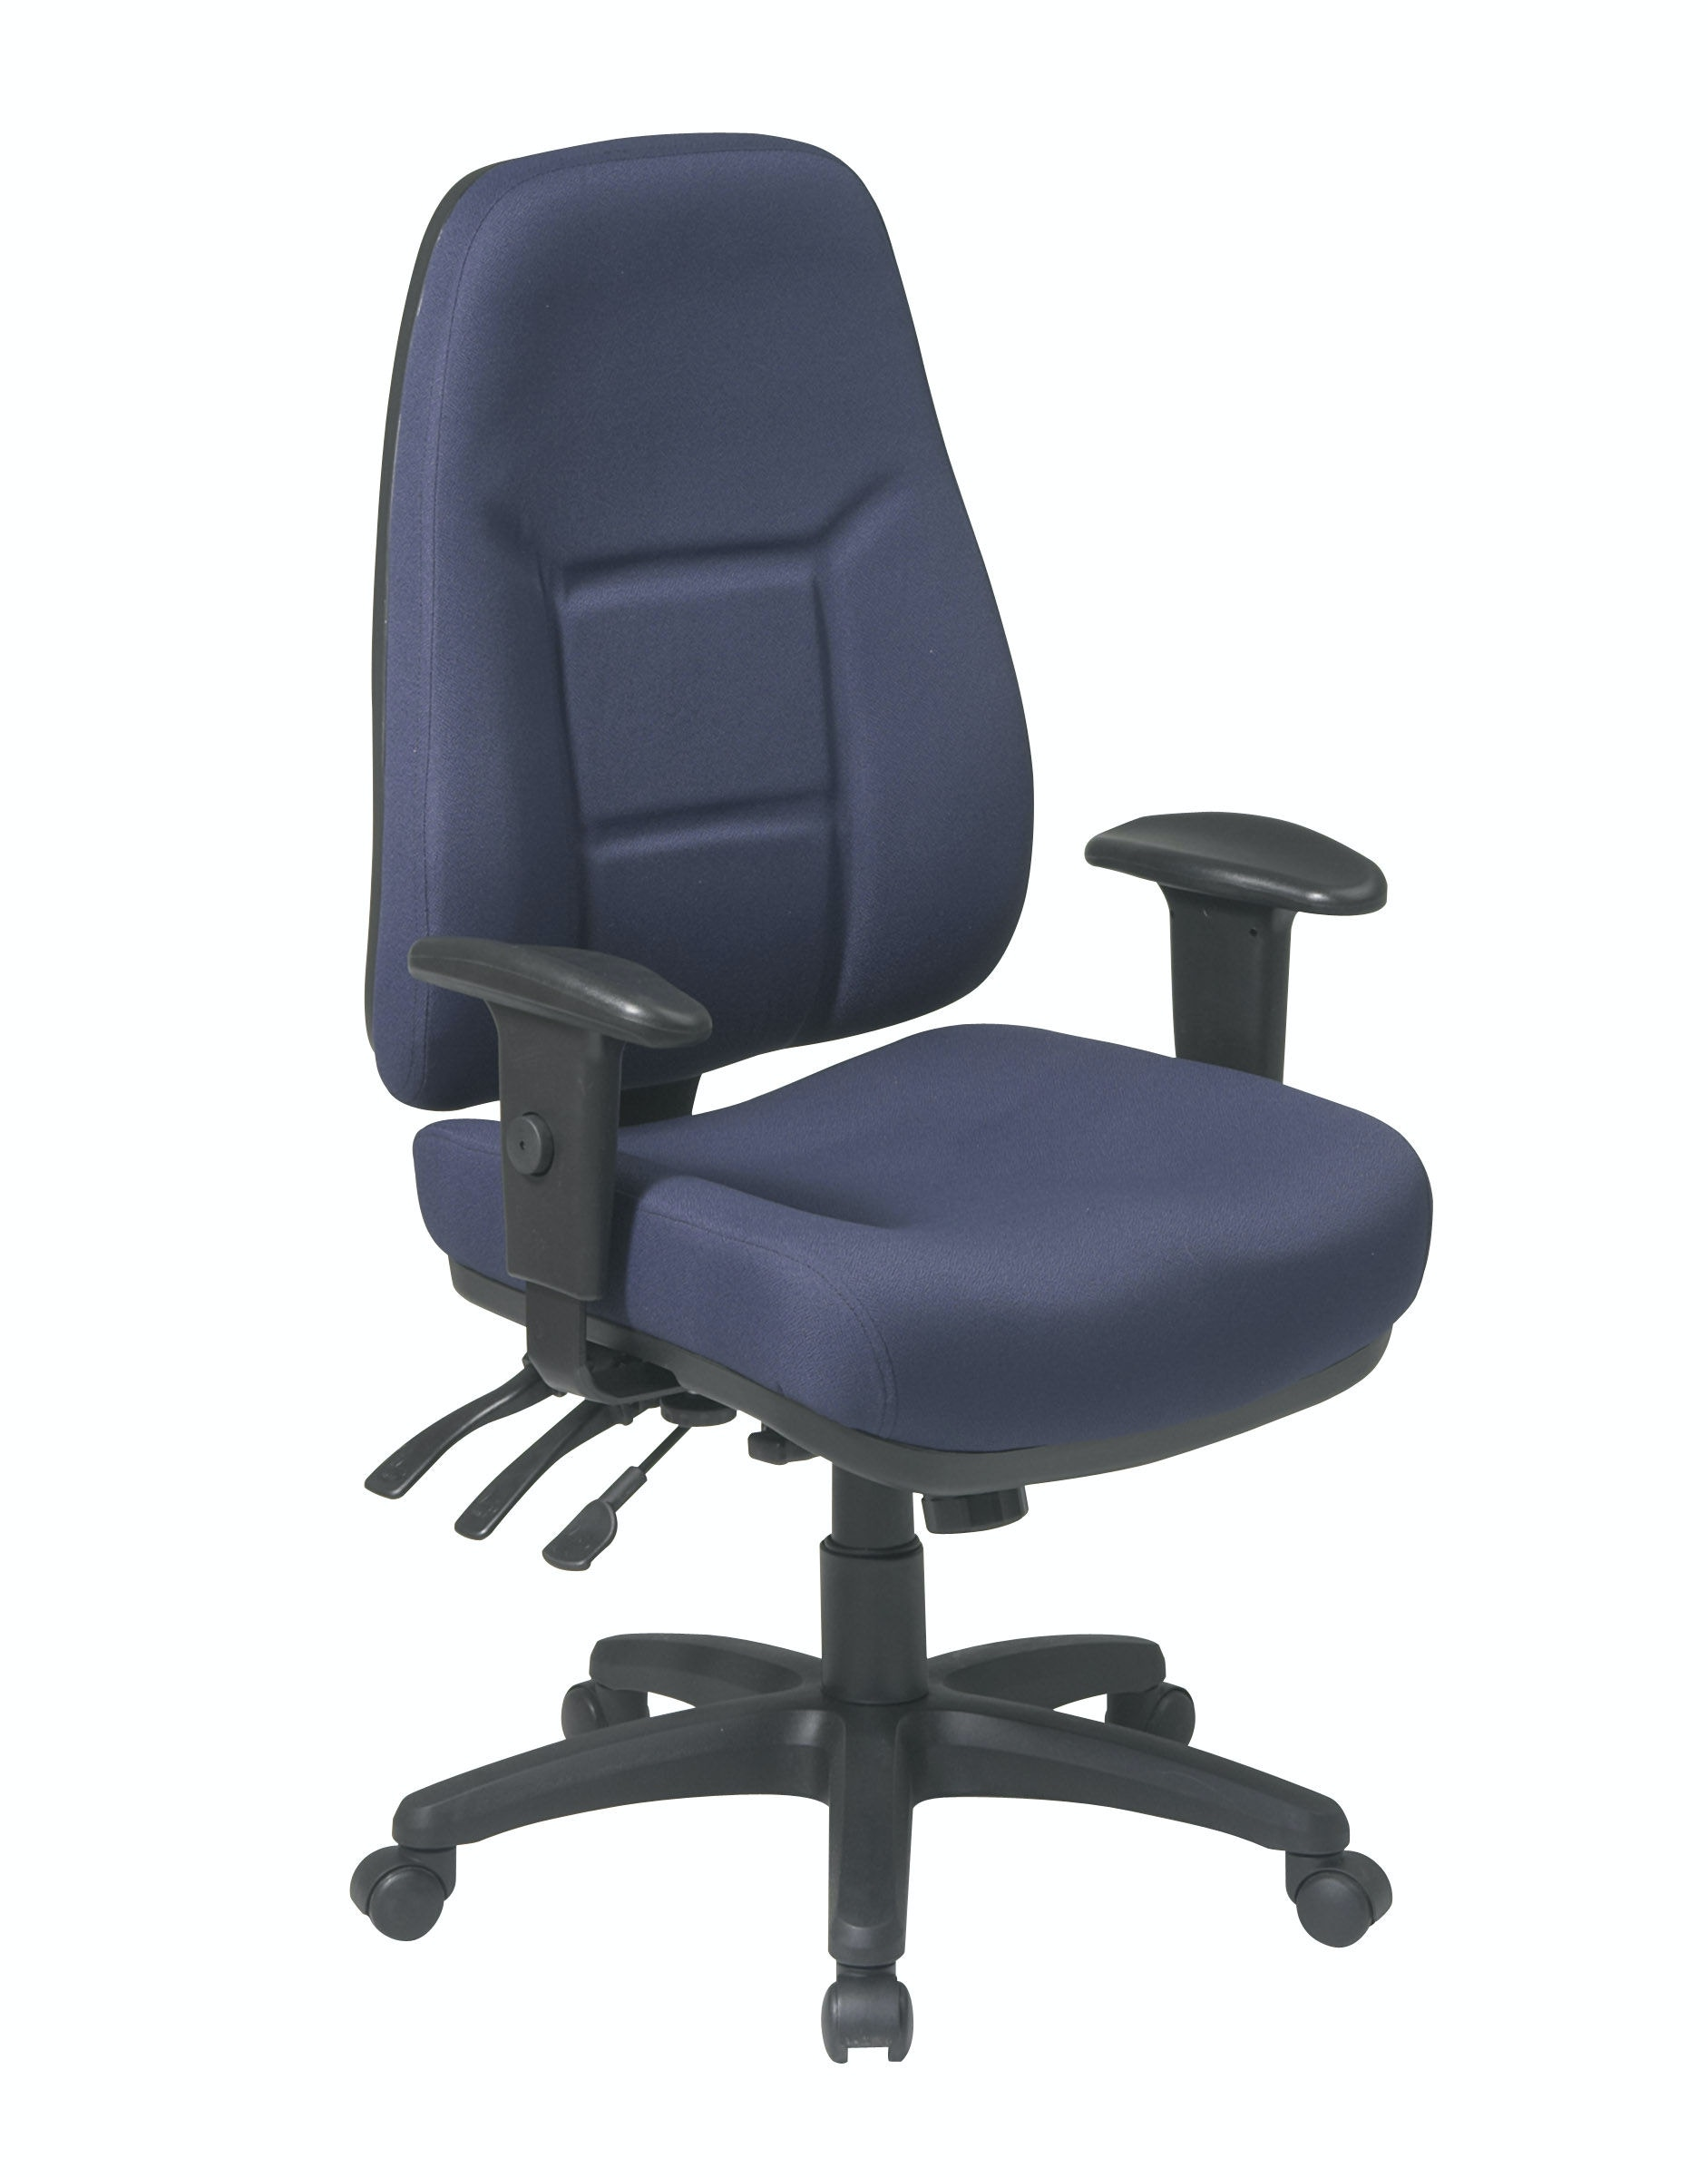 ergonomic chair for home office revolving repair in trivandrum star products high back multi function